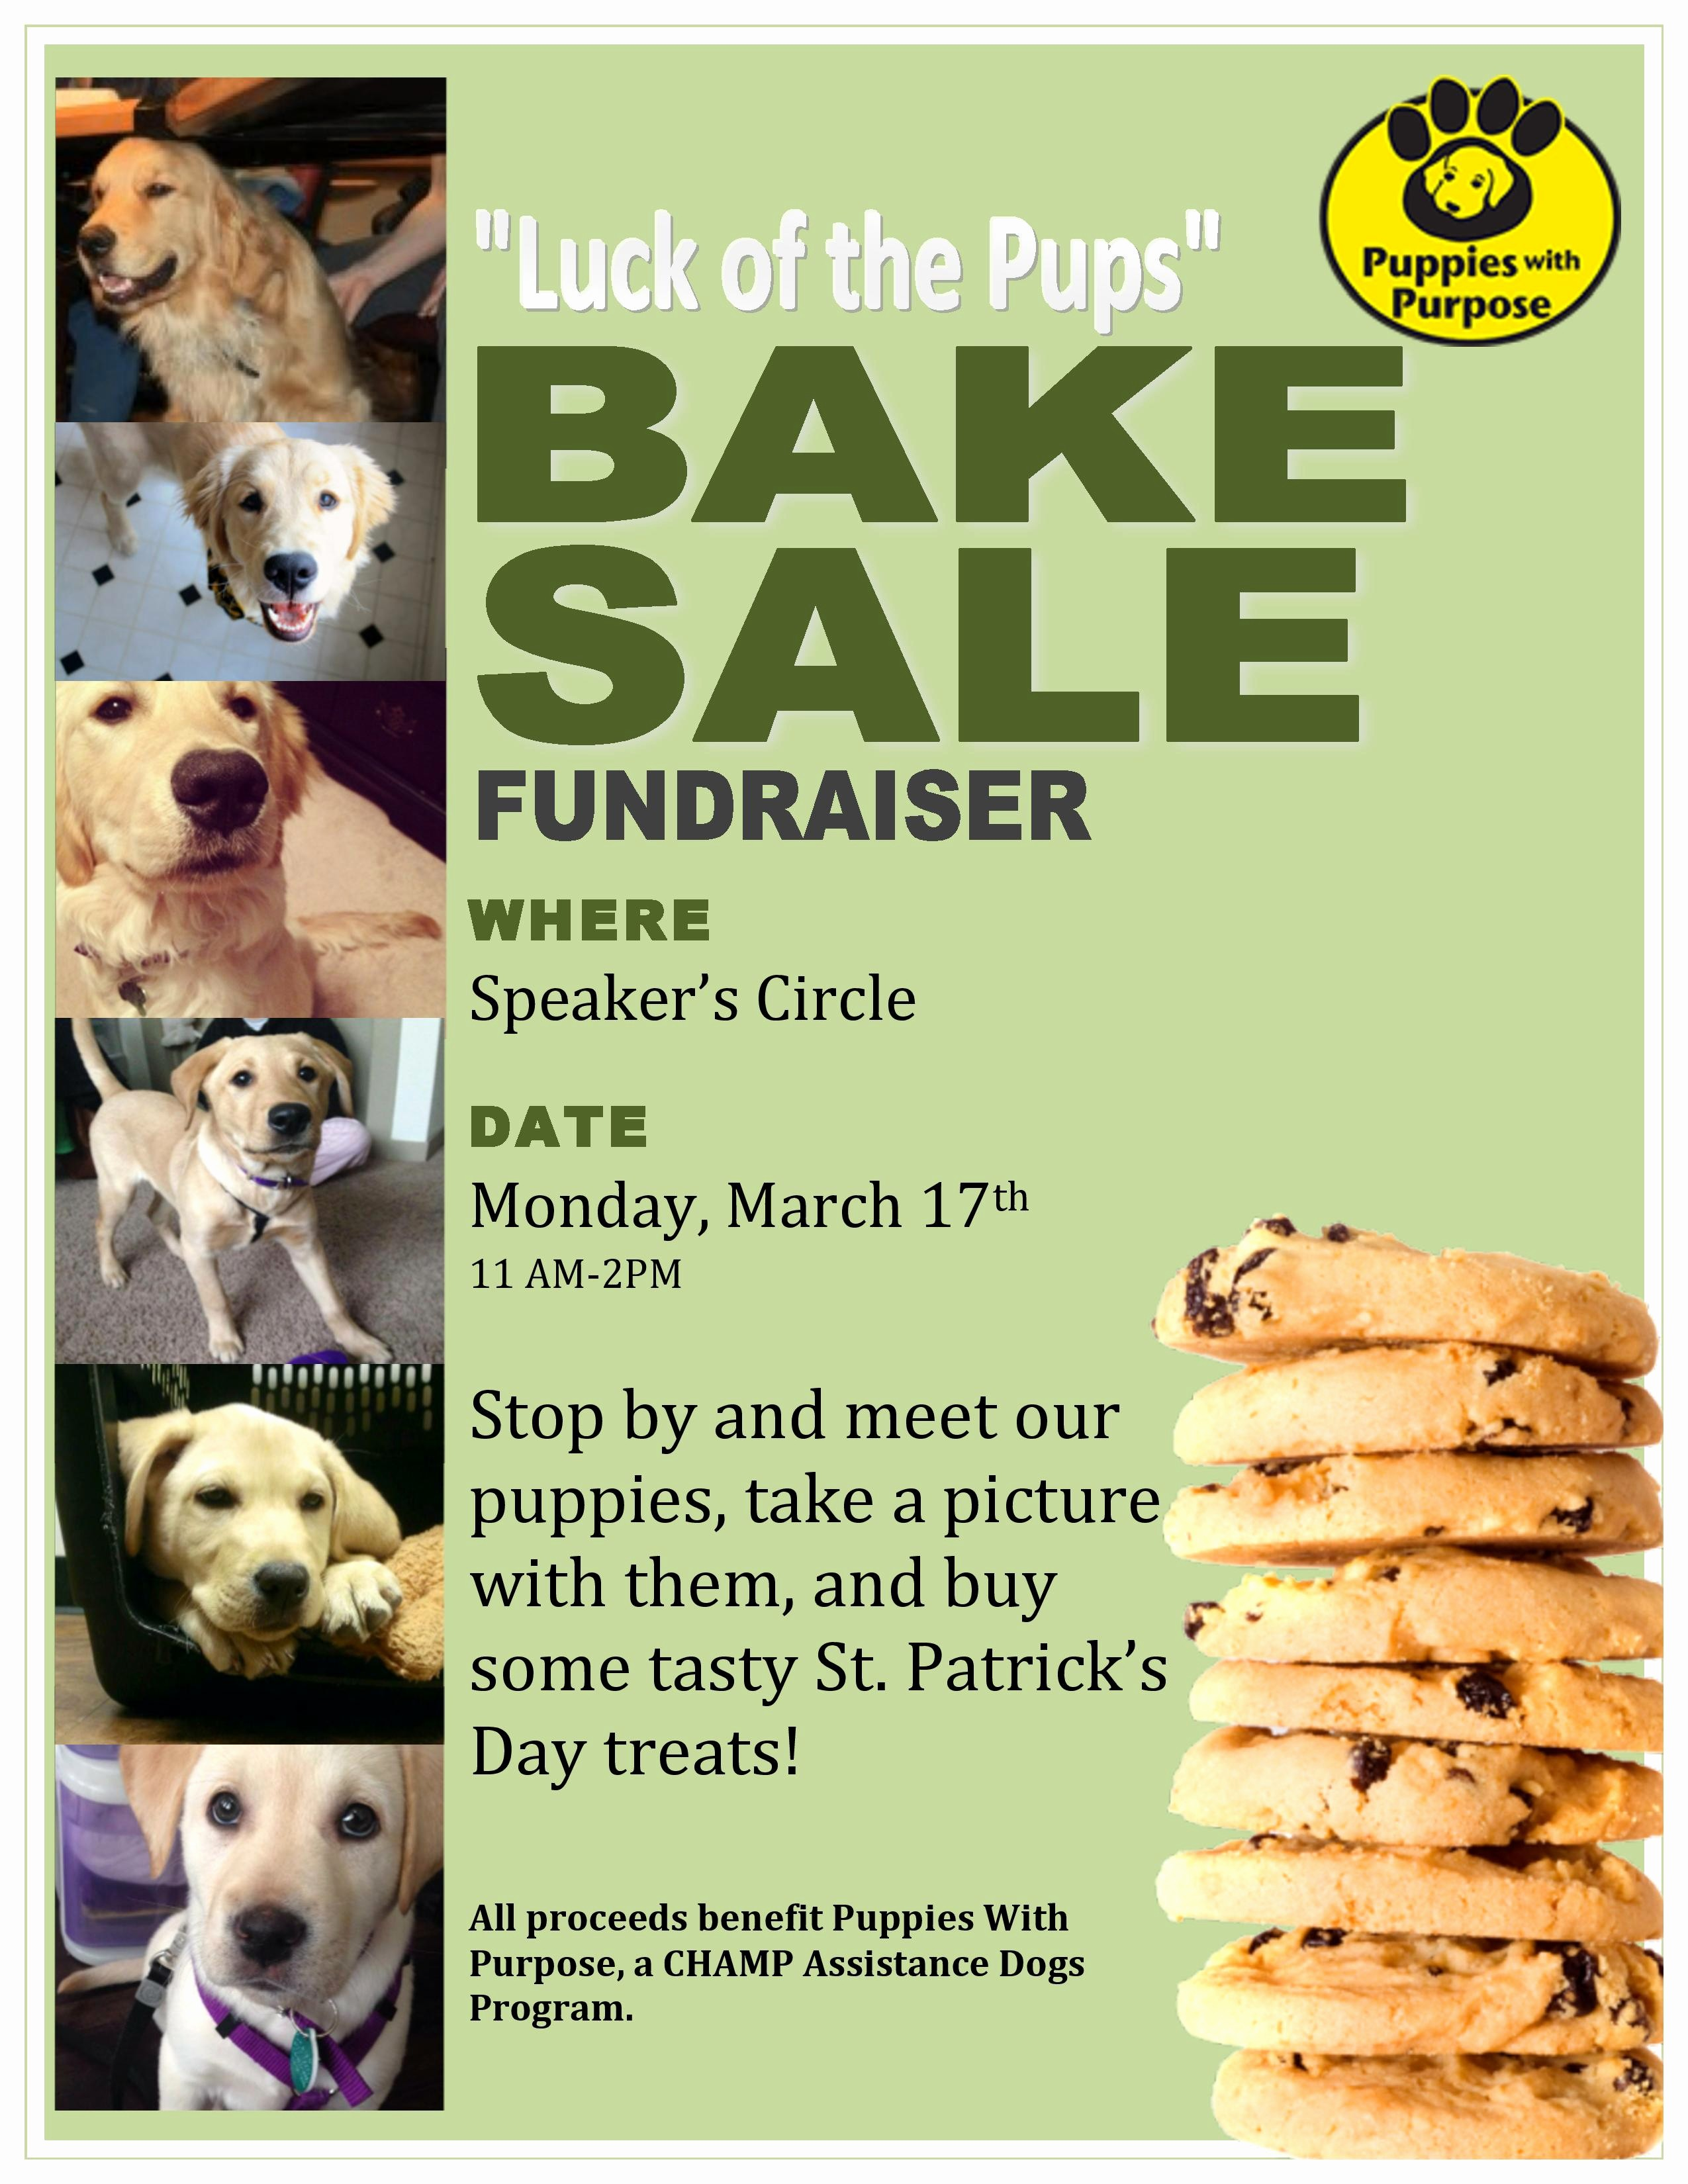 Puppies for Sale Flyer Template Best Of Bake Sale Fundraiser Flyer Related Keywords Bake Sale